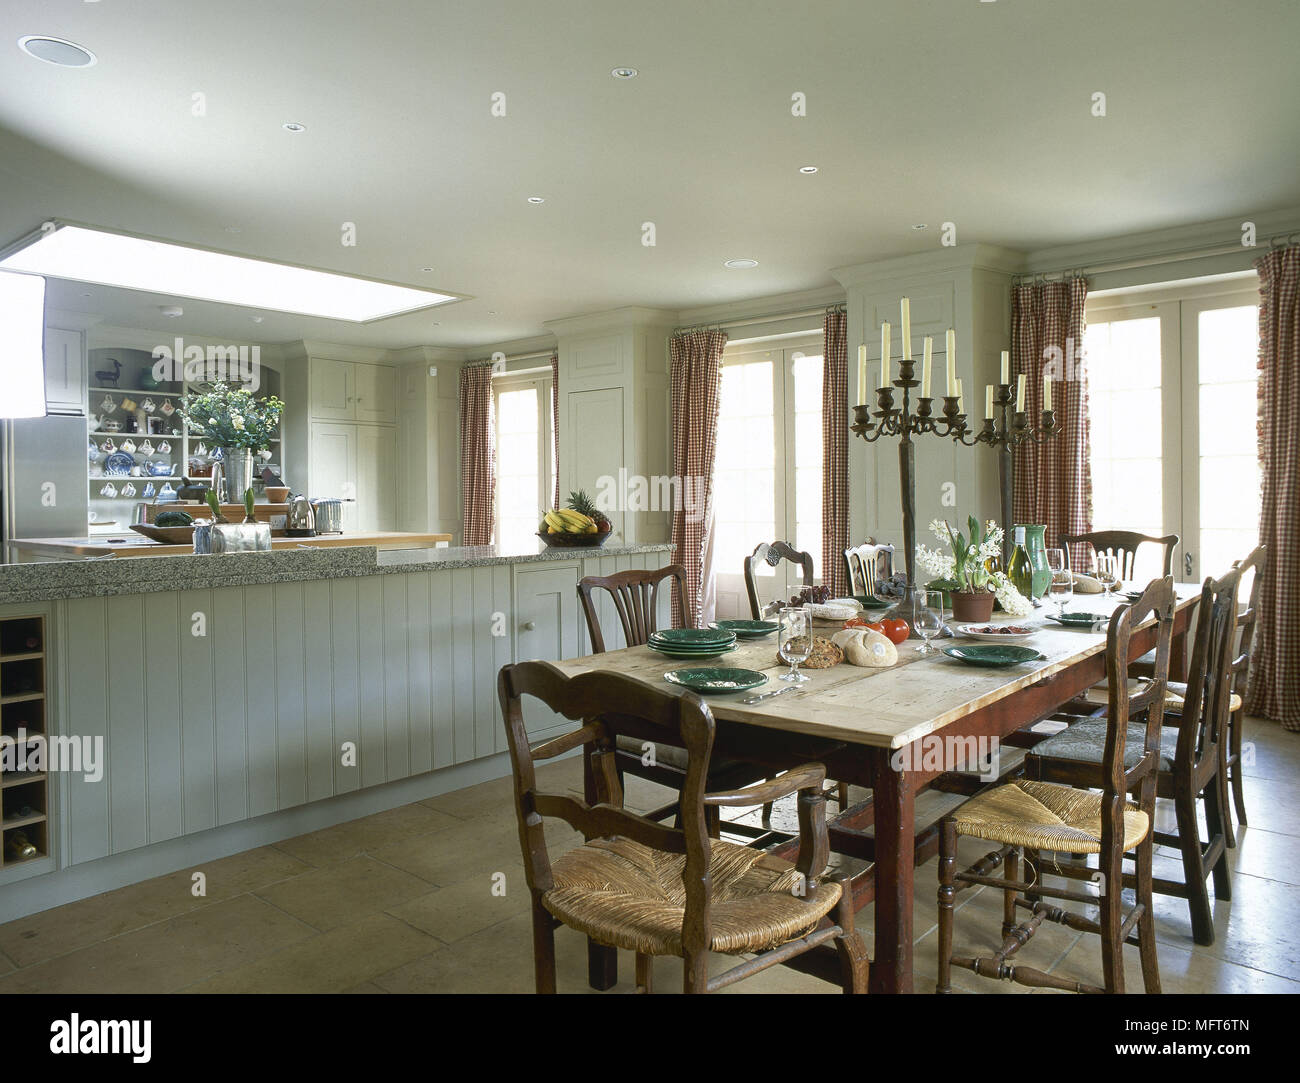 Traditional Country Kitchen Painted Units Central Island Unit Wood Table  Chairs Interiors Kitchens Kitchen Diner